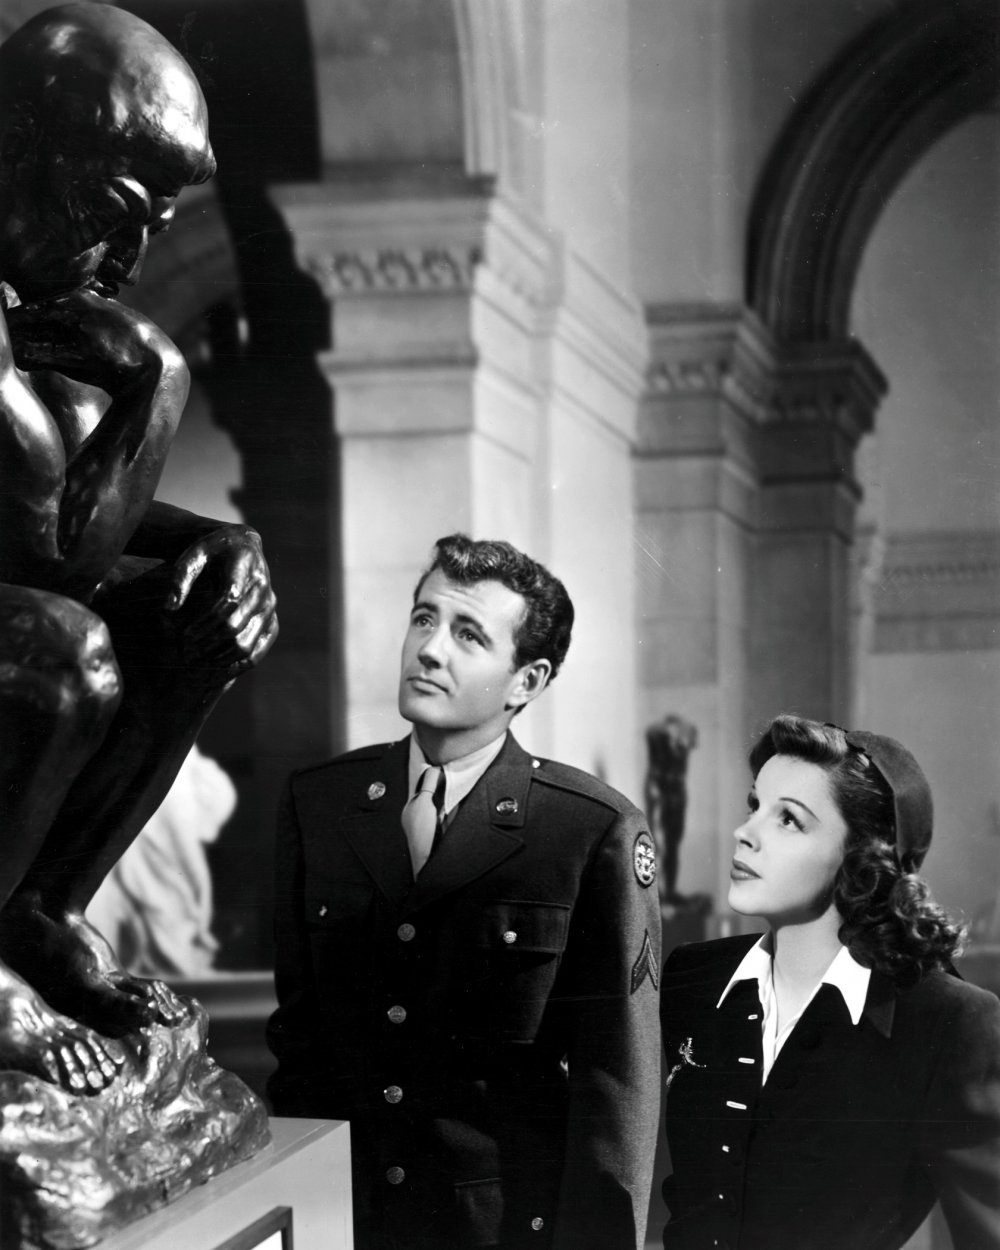 Robert Walker and Judy Garland in The Clock